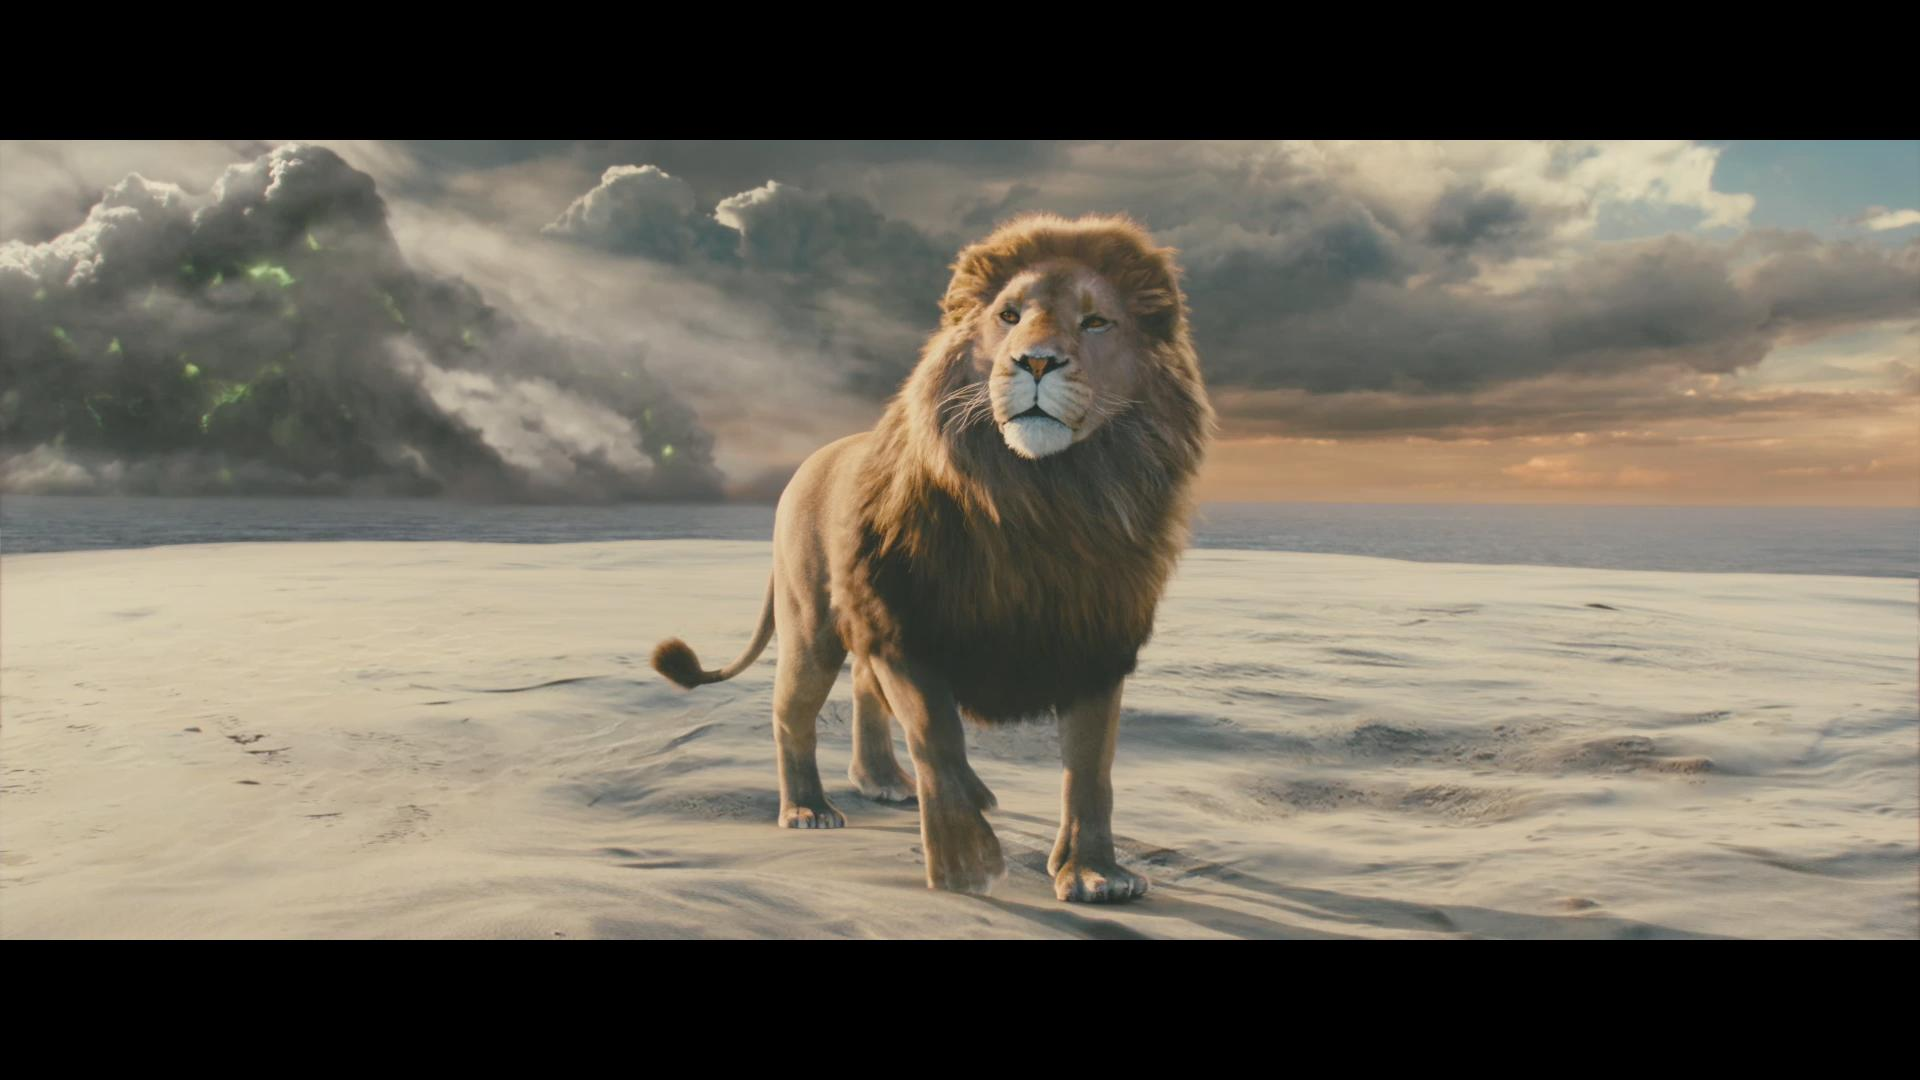 Narnia Aslan Wallpapers Wallpaper Cave